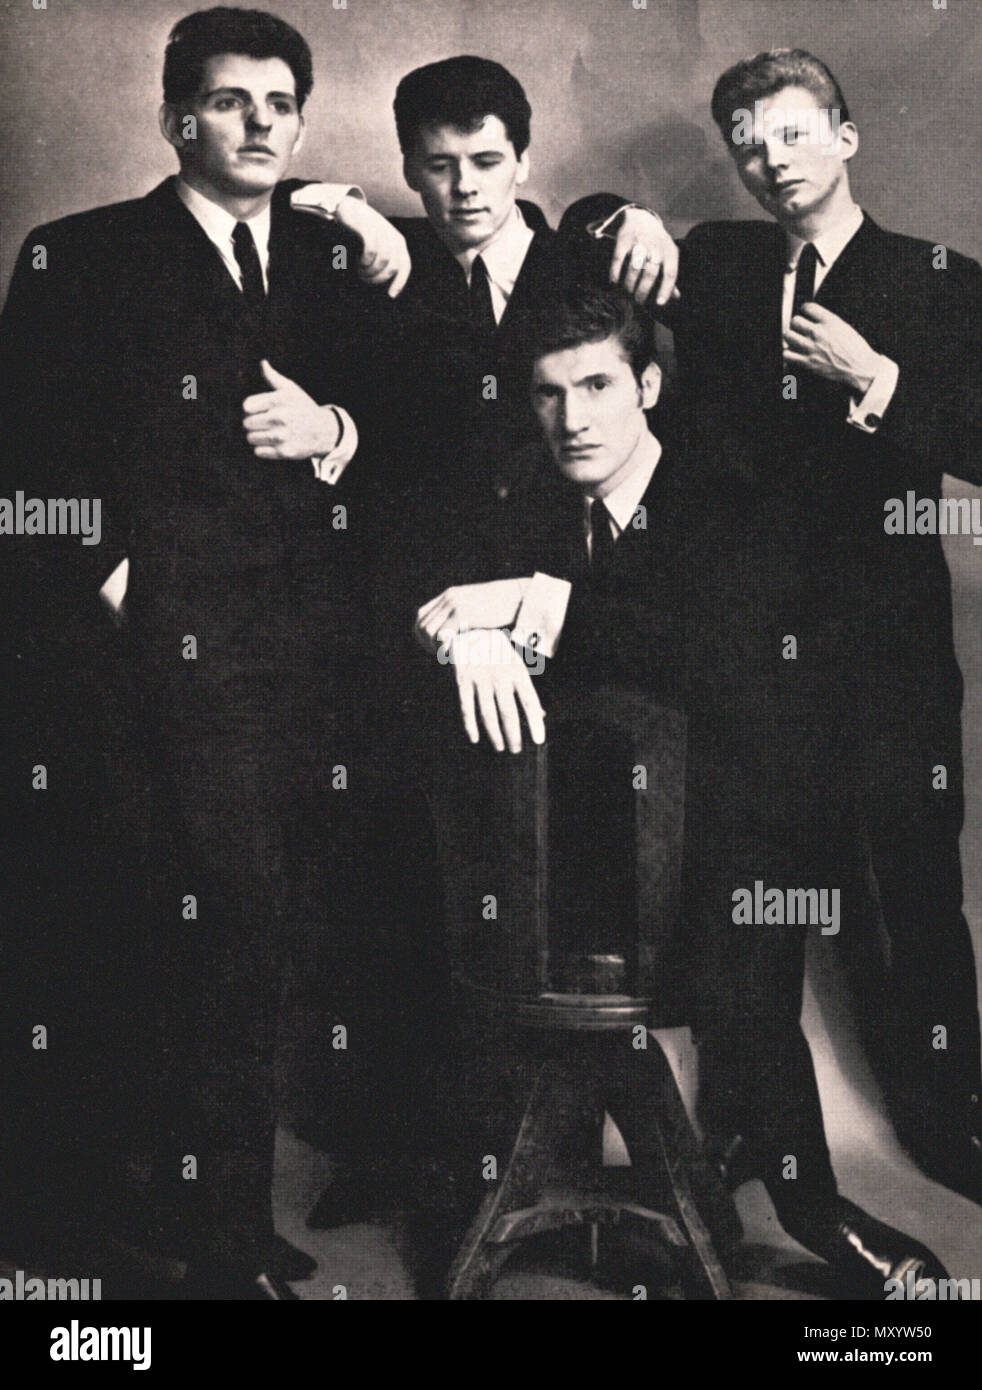 Early publicity image of pop group The Searchers, from 1963 - Stock Image